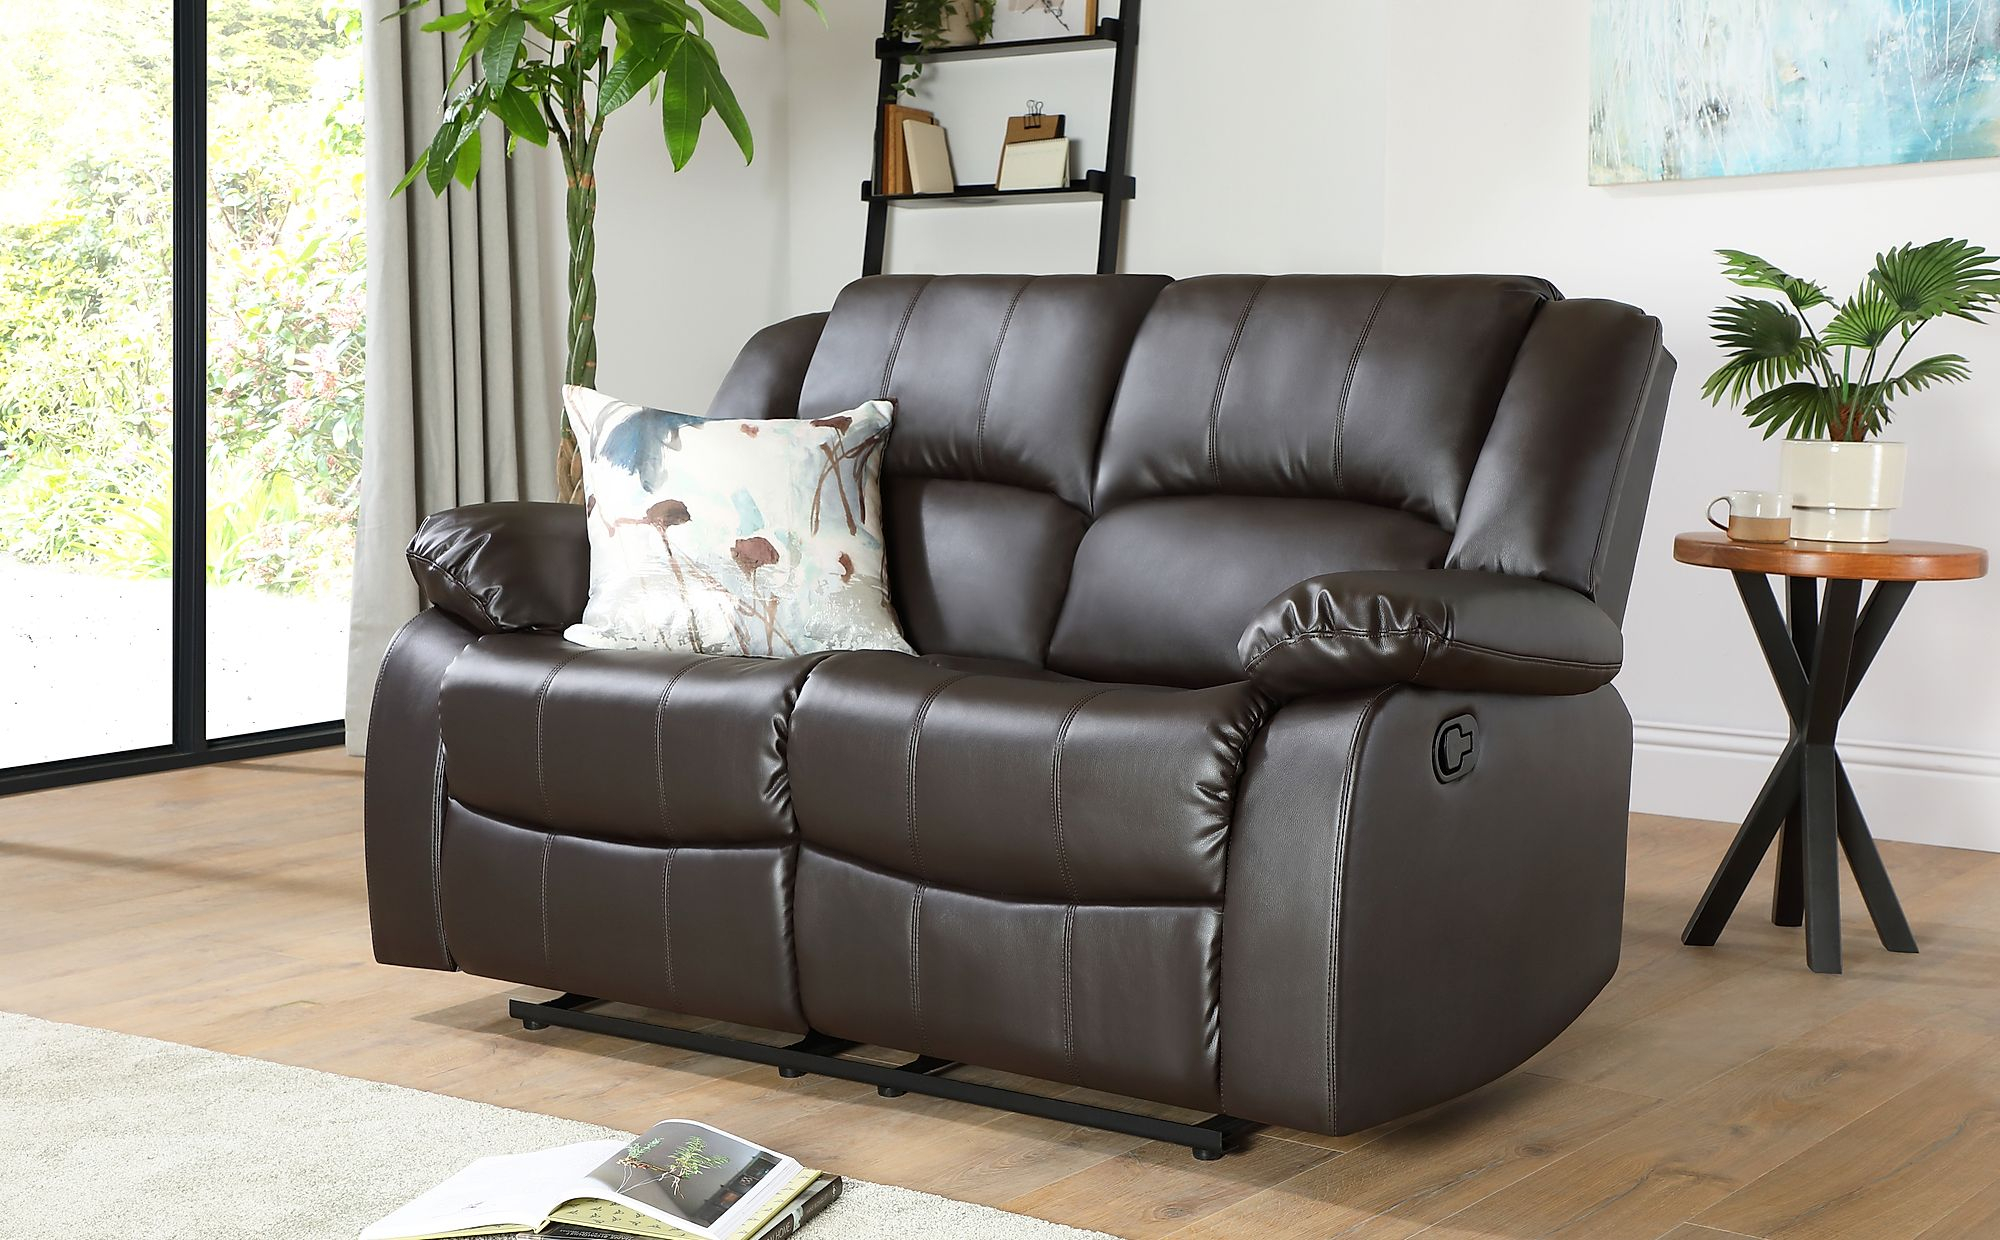 Dakota Brown Leather 2 Seater Recliner Sofa | Furniture Choice For Two Seater Sofas (View 12 of 15)